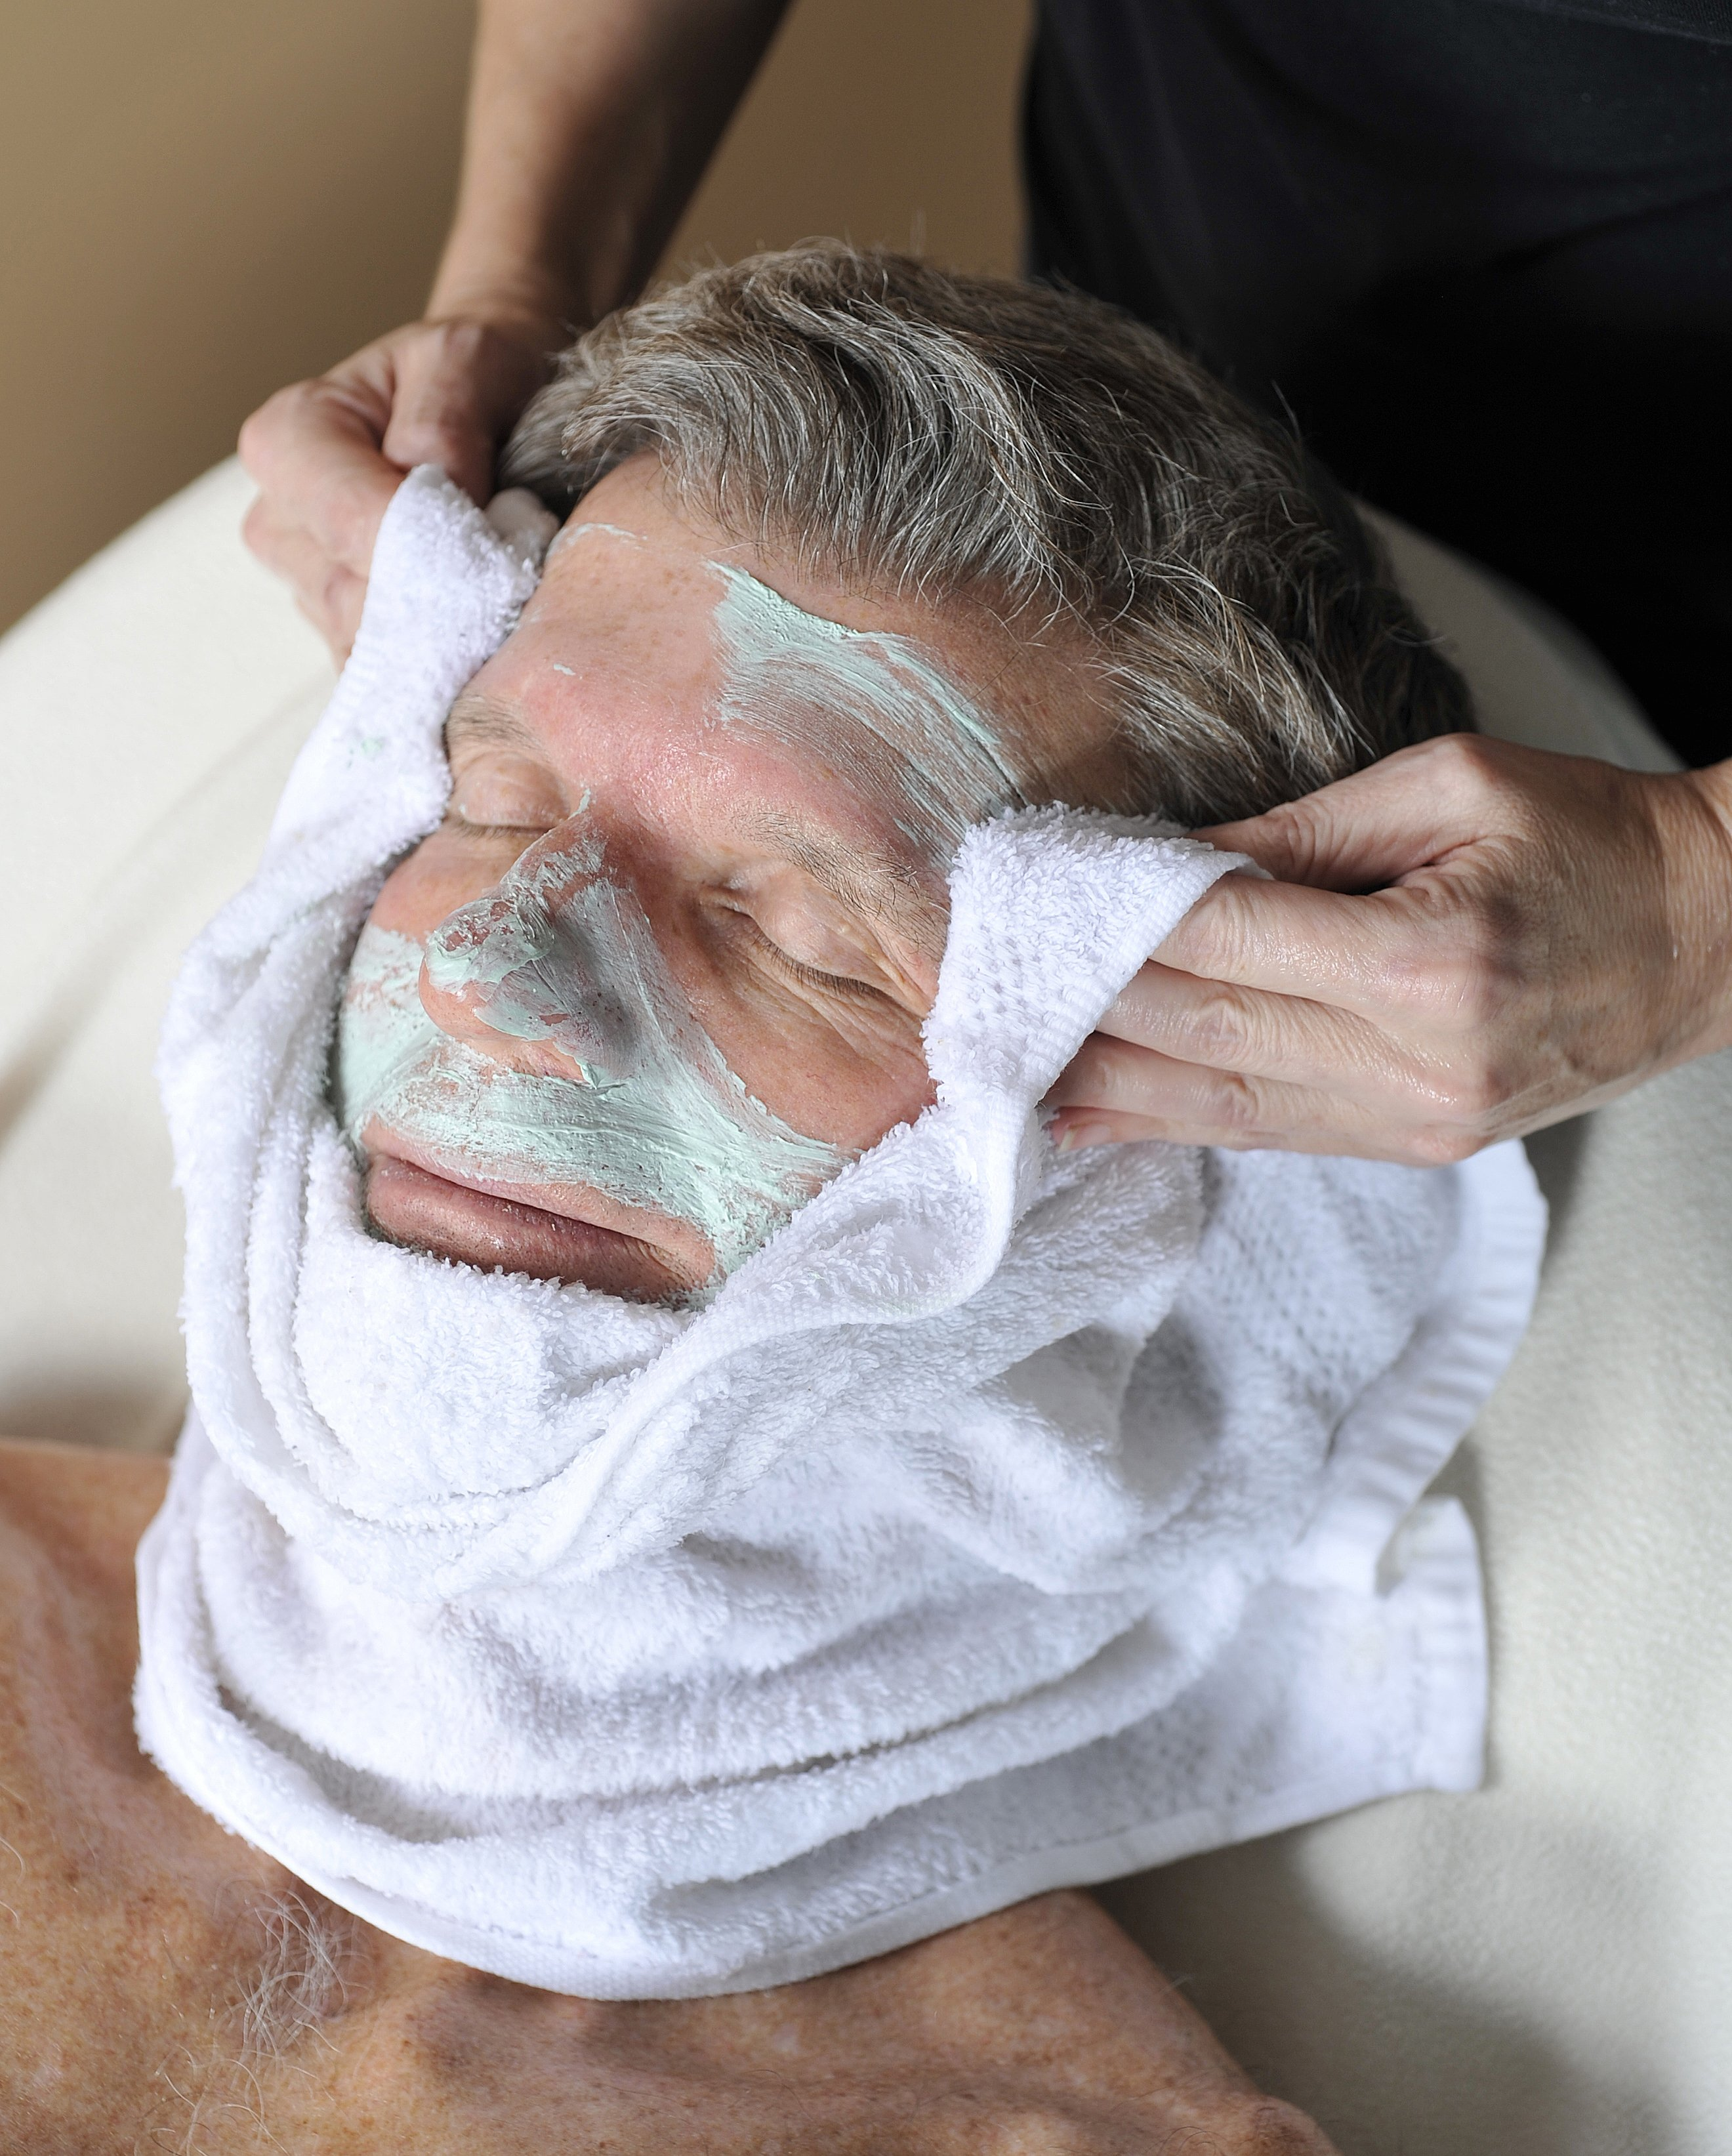 Men's Skin Care Services